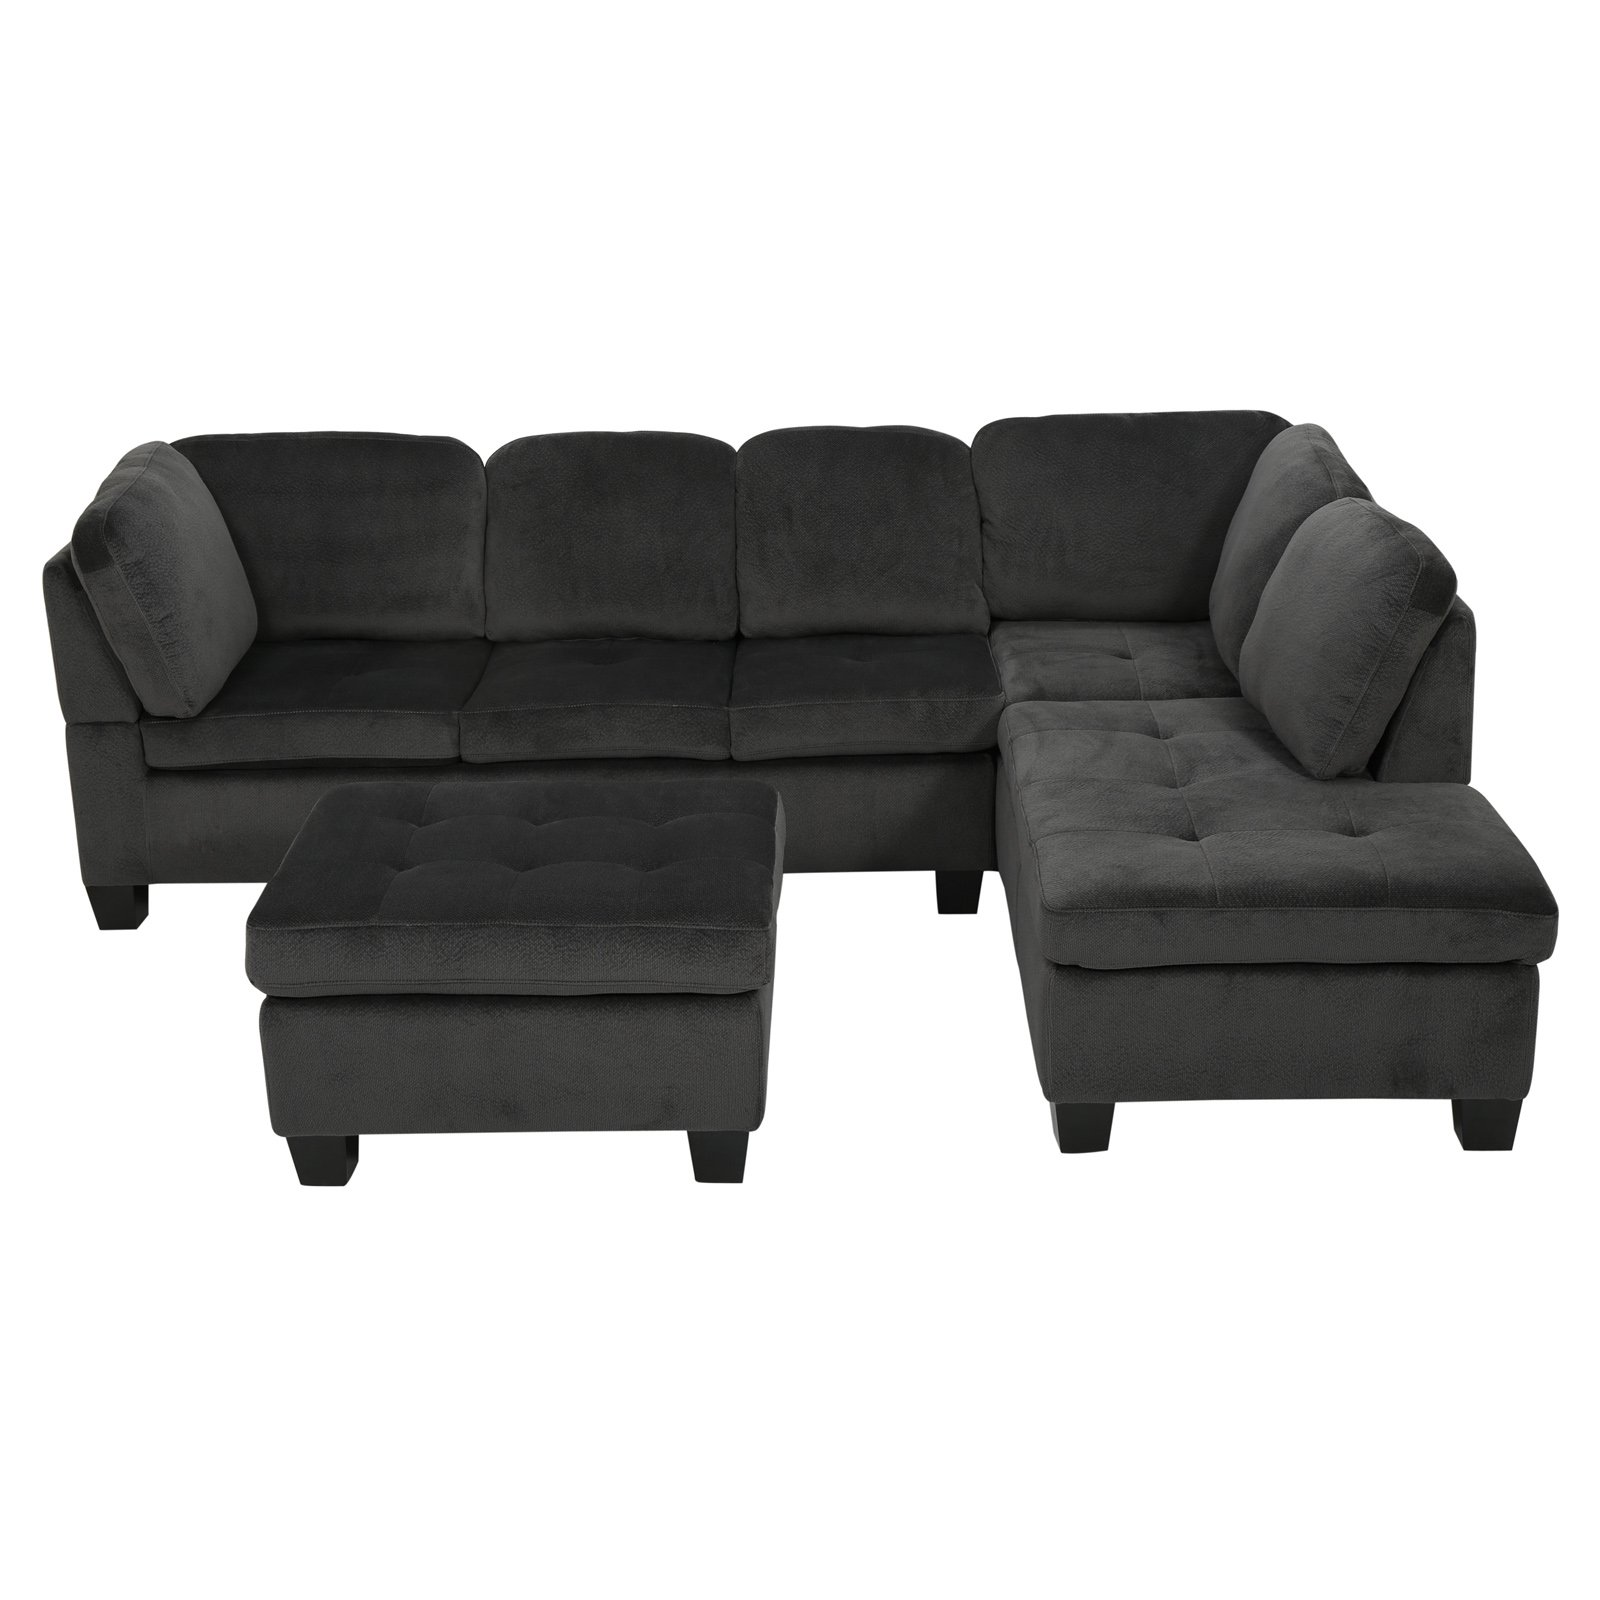 Best Selling Home Evan 3 Piece Sectional Sofa by Home Loft Concepts